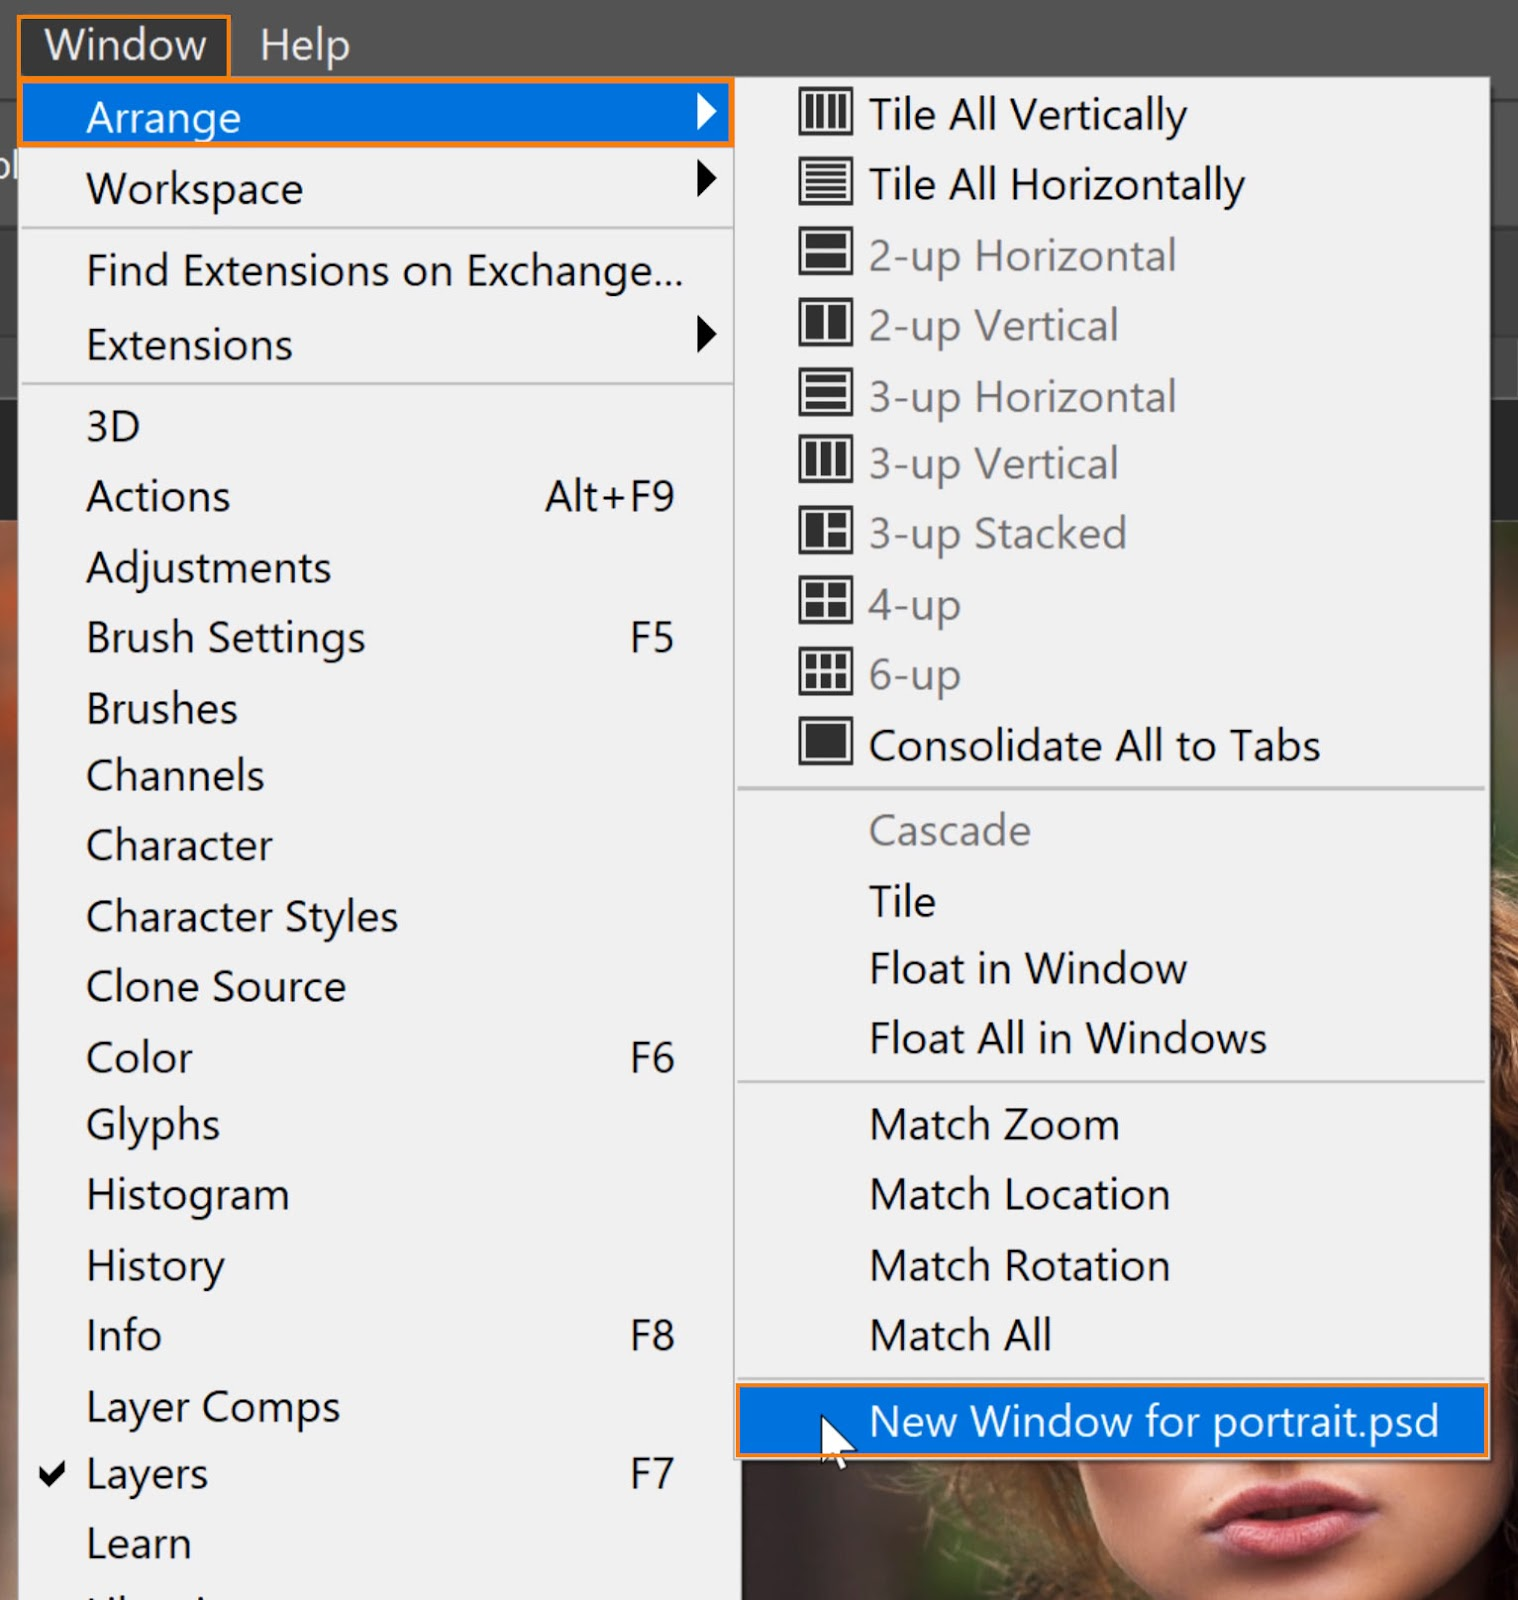 choose Window > Arrange > New Window for (name of the file).